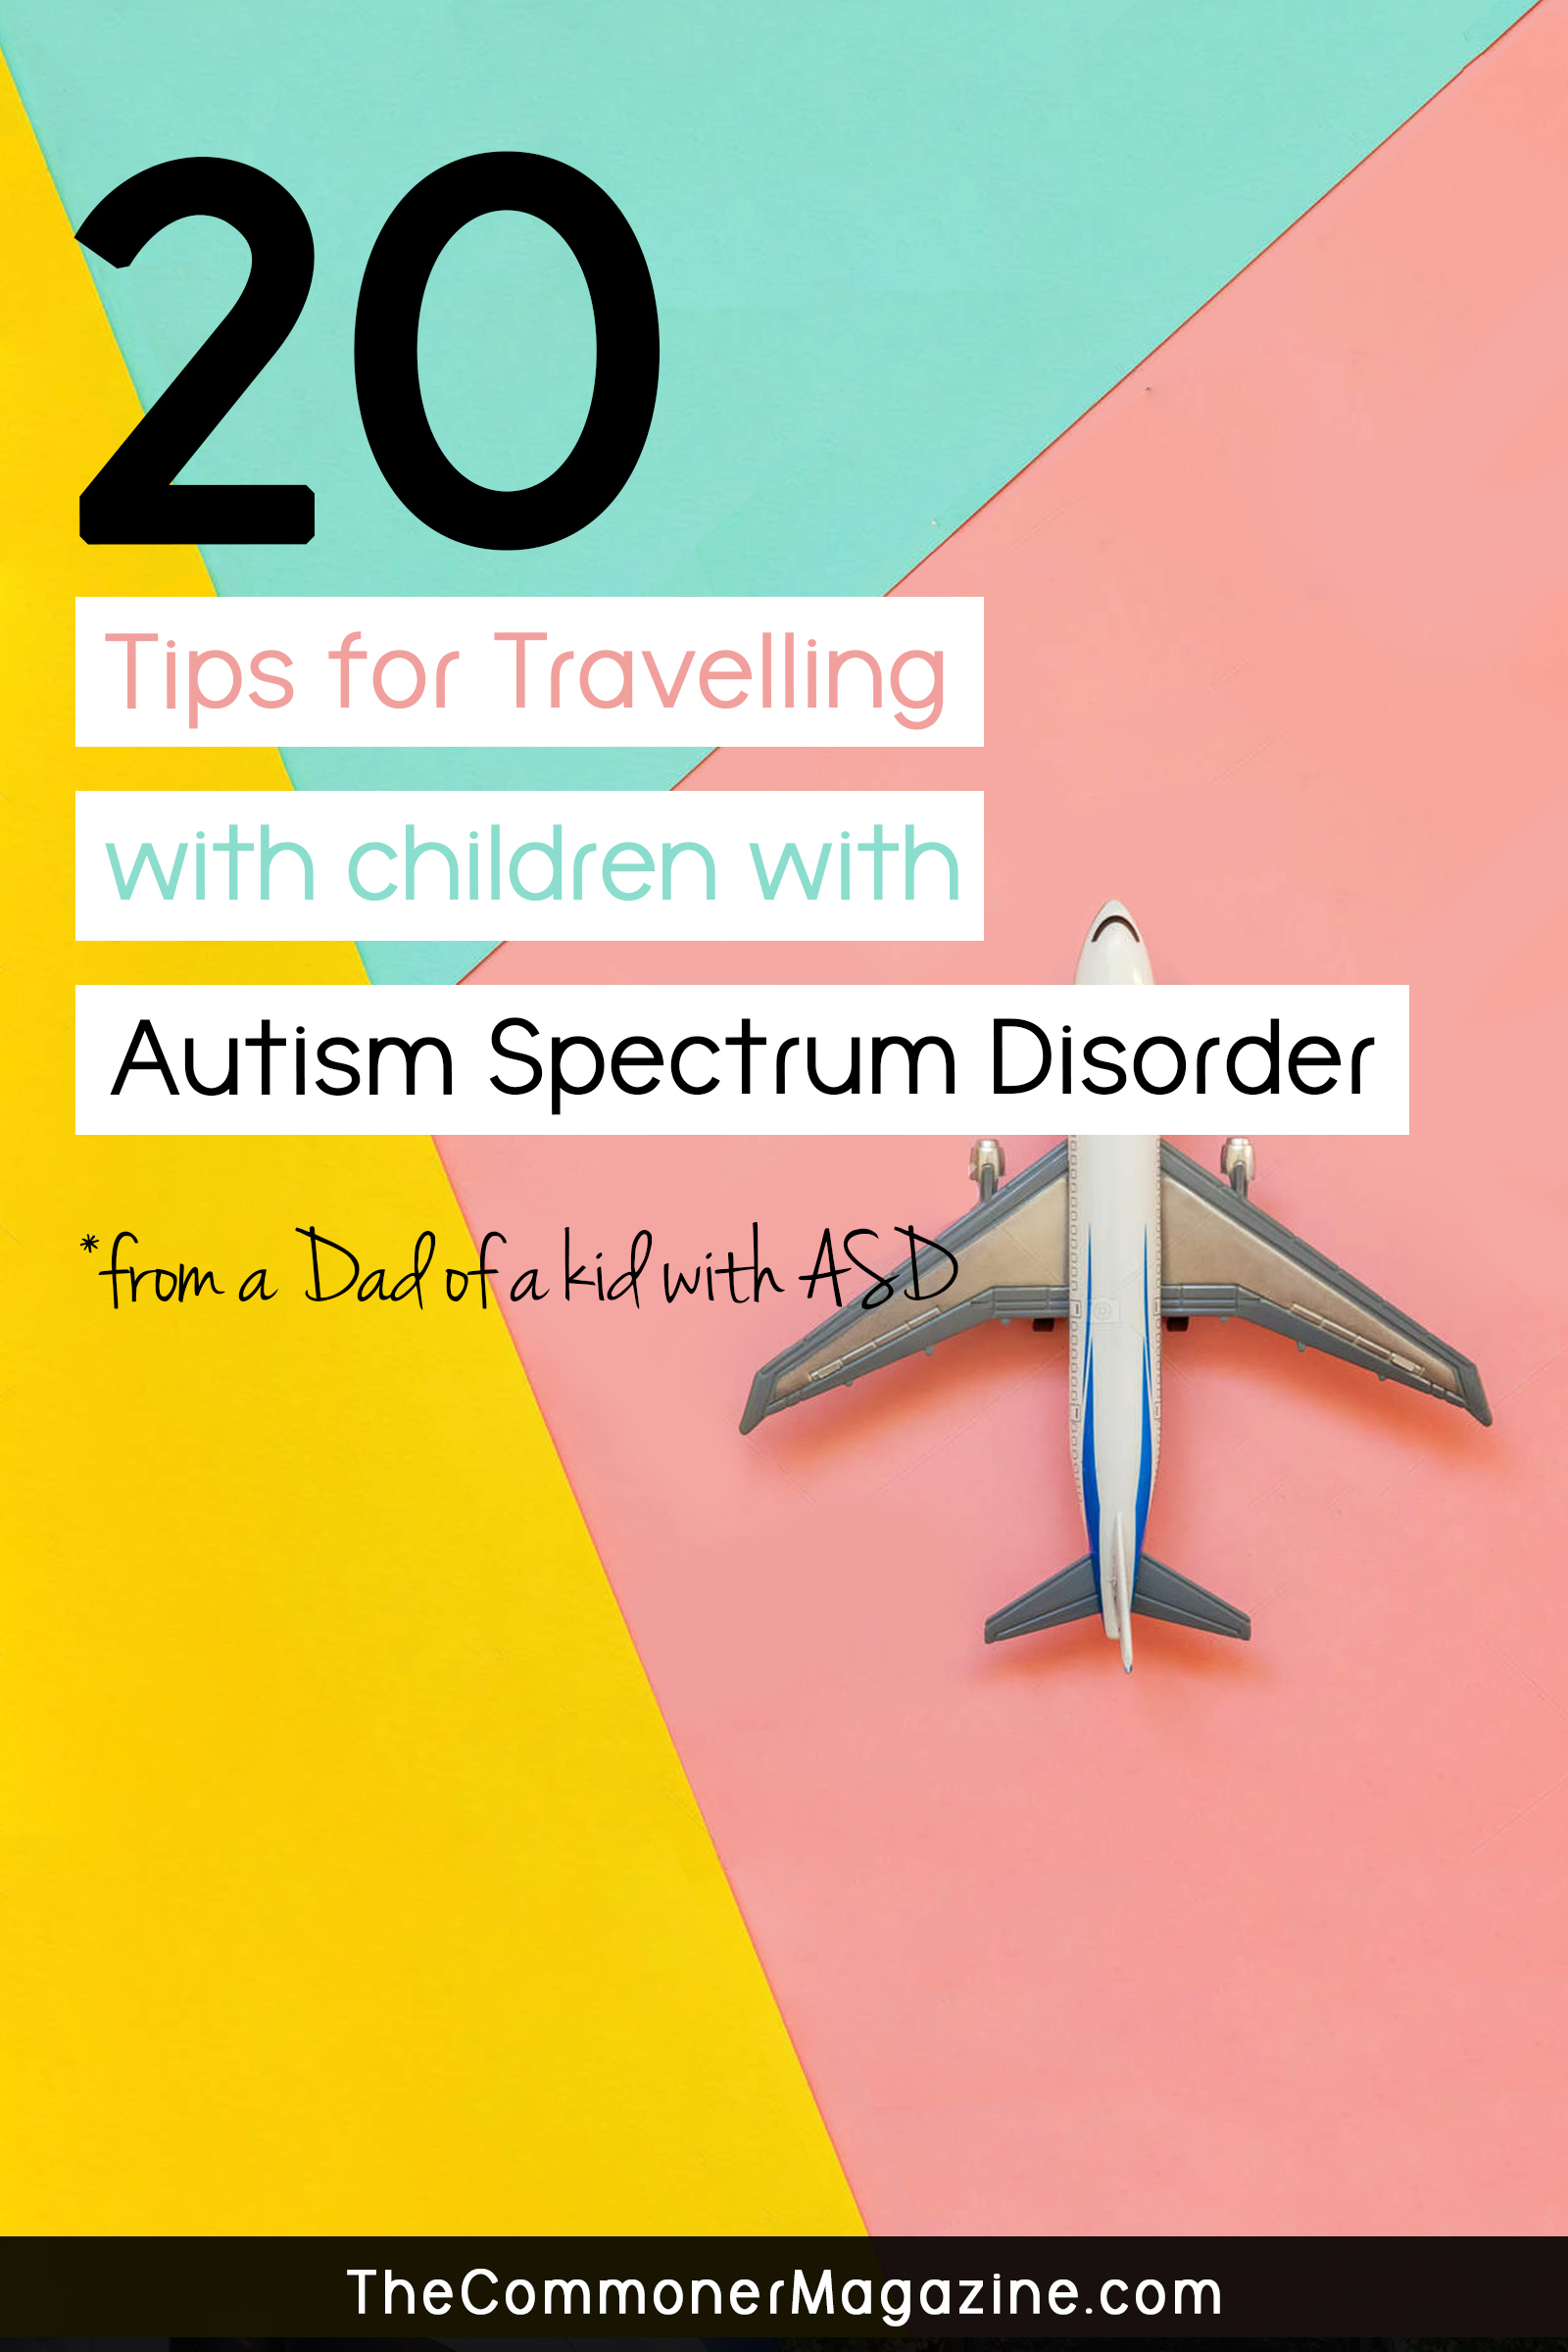 From a travelling family that has found a way to keep the adventures going while accommodating the special needs of our son with Autism, ADHD and Fragile X Sydrome. With a little planning and flexibility travelling with autism is possible! From the founders of The Commoner Magazine, here's a glimpse into our ever evolving travel style. #travelwithautism #ASD #autism #traveltips #autismandtravel #ADHDandtravel #fragileXsydrome #fragileX #specialneedstravel